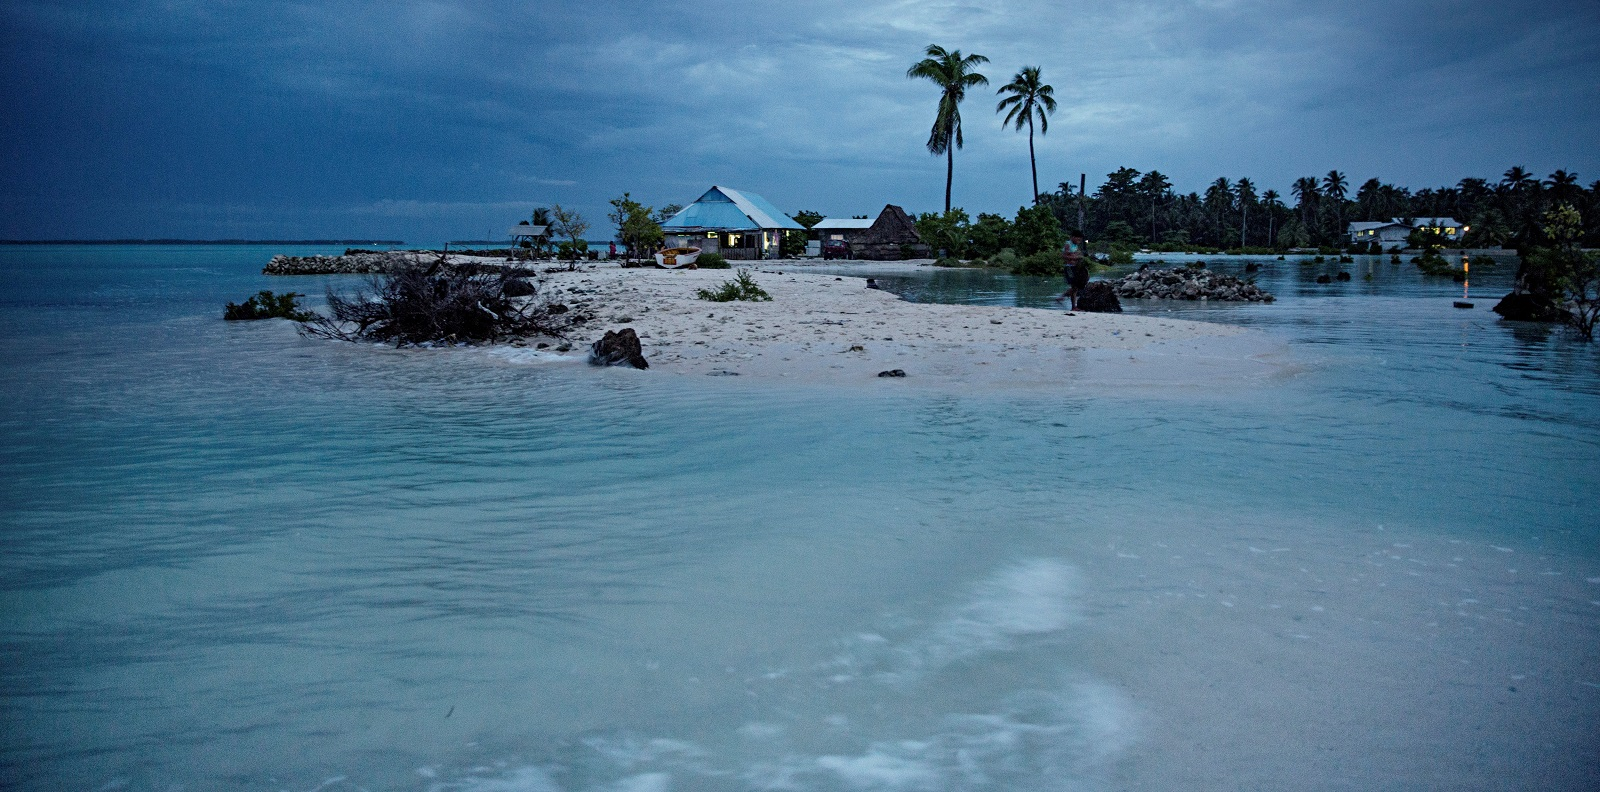 The small village of Eita on Kirabiti becomes a separate island during high tide. (Photo: Jonas Gratzer/via Getty Images)